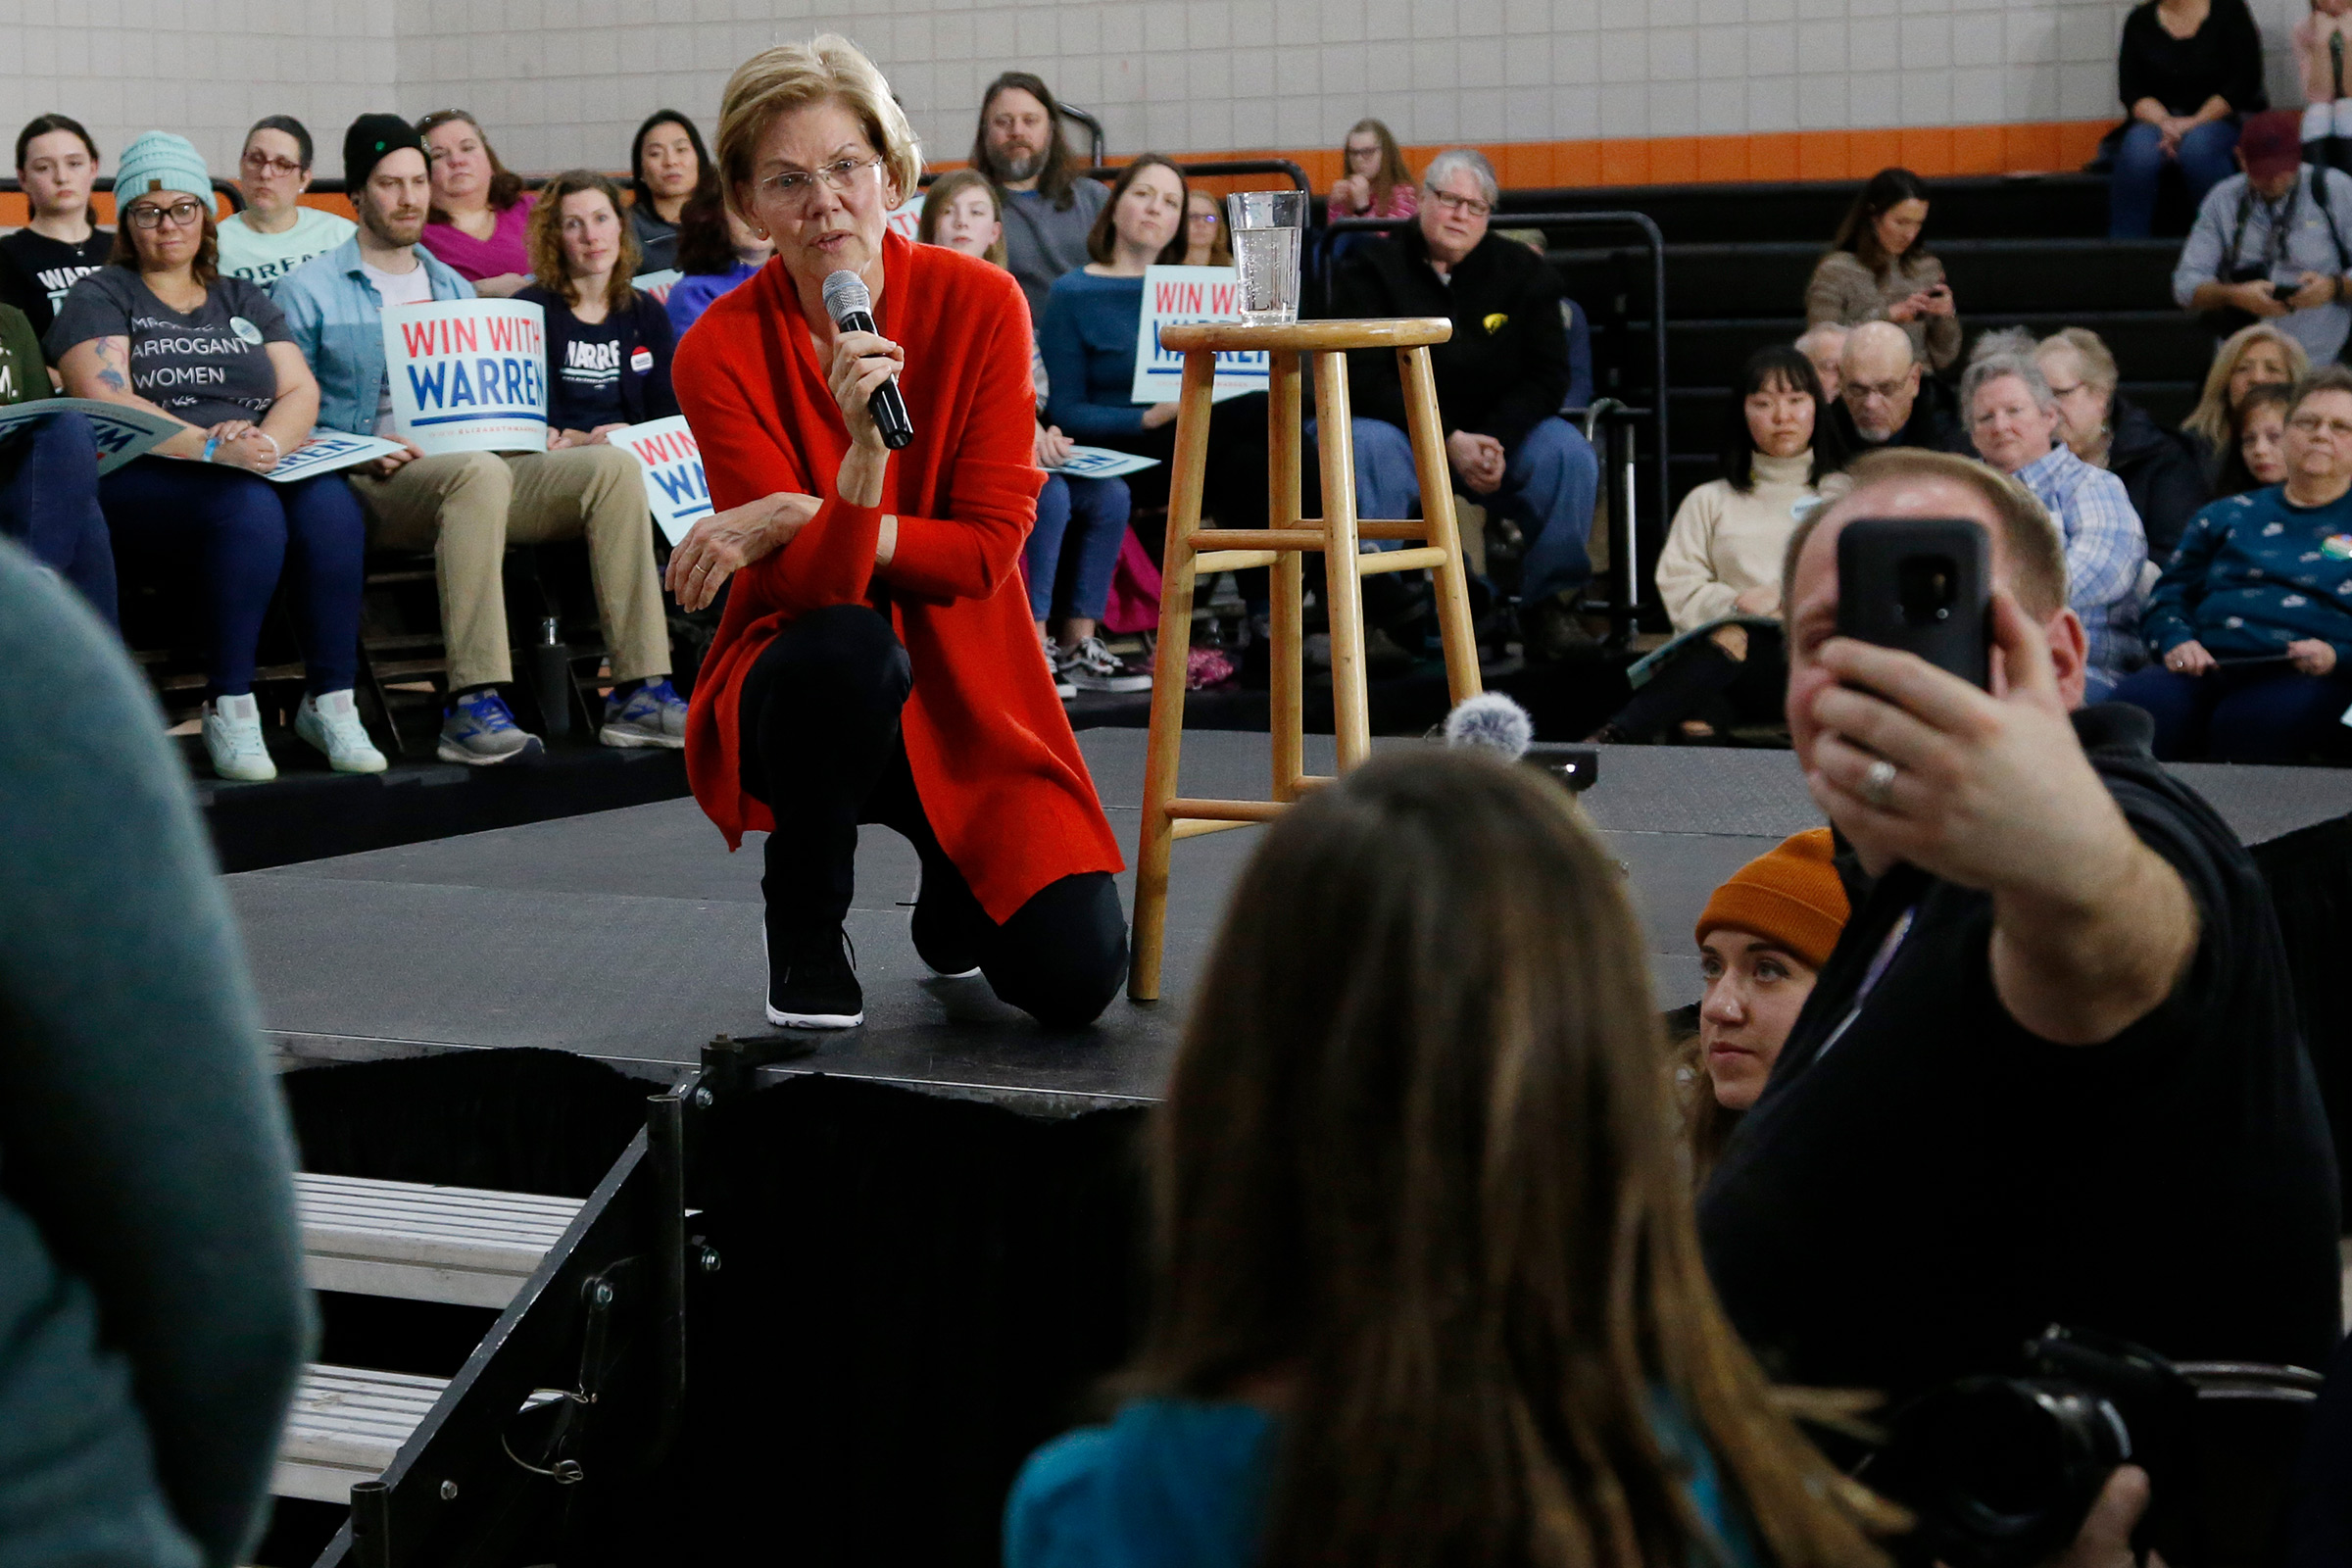 Democratic presidential candidate Sen. Elizabeth Warren, answers a question for a young girl during a town hall in Davenport, Iowa, Jan. 26, 2020.